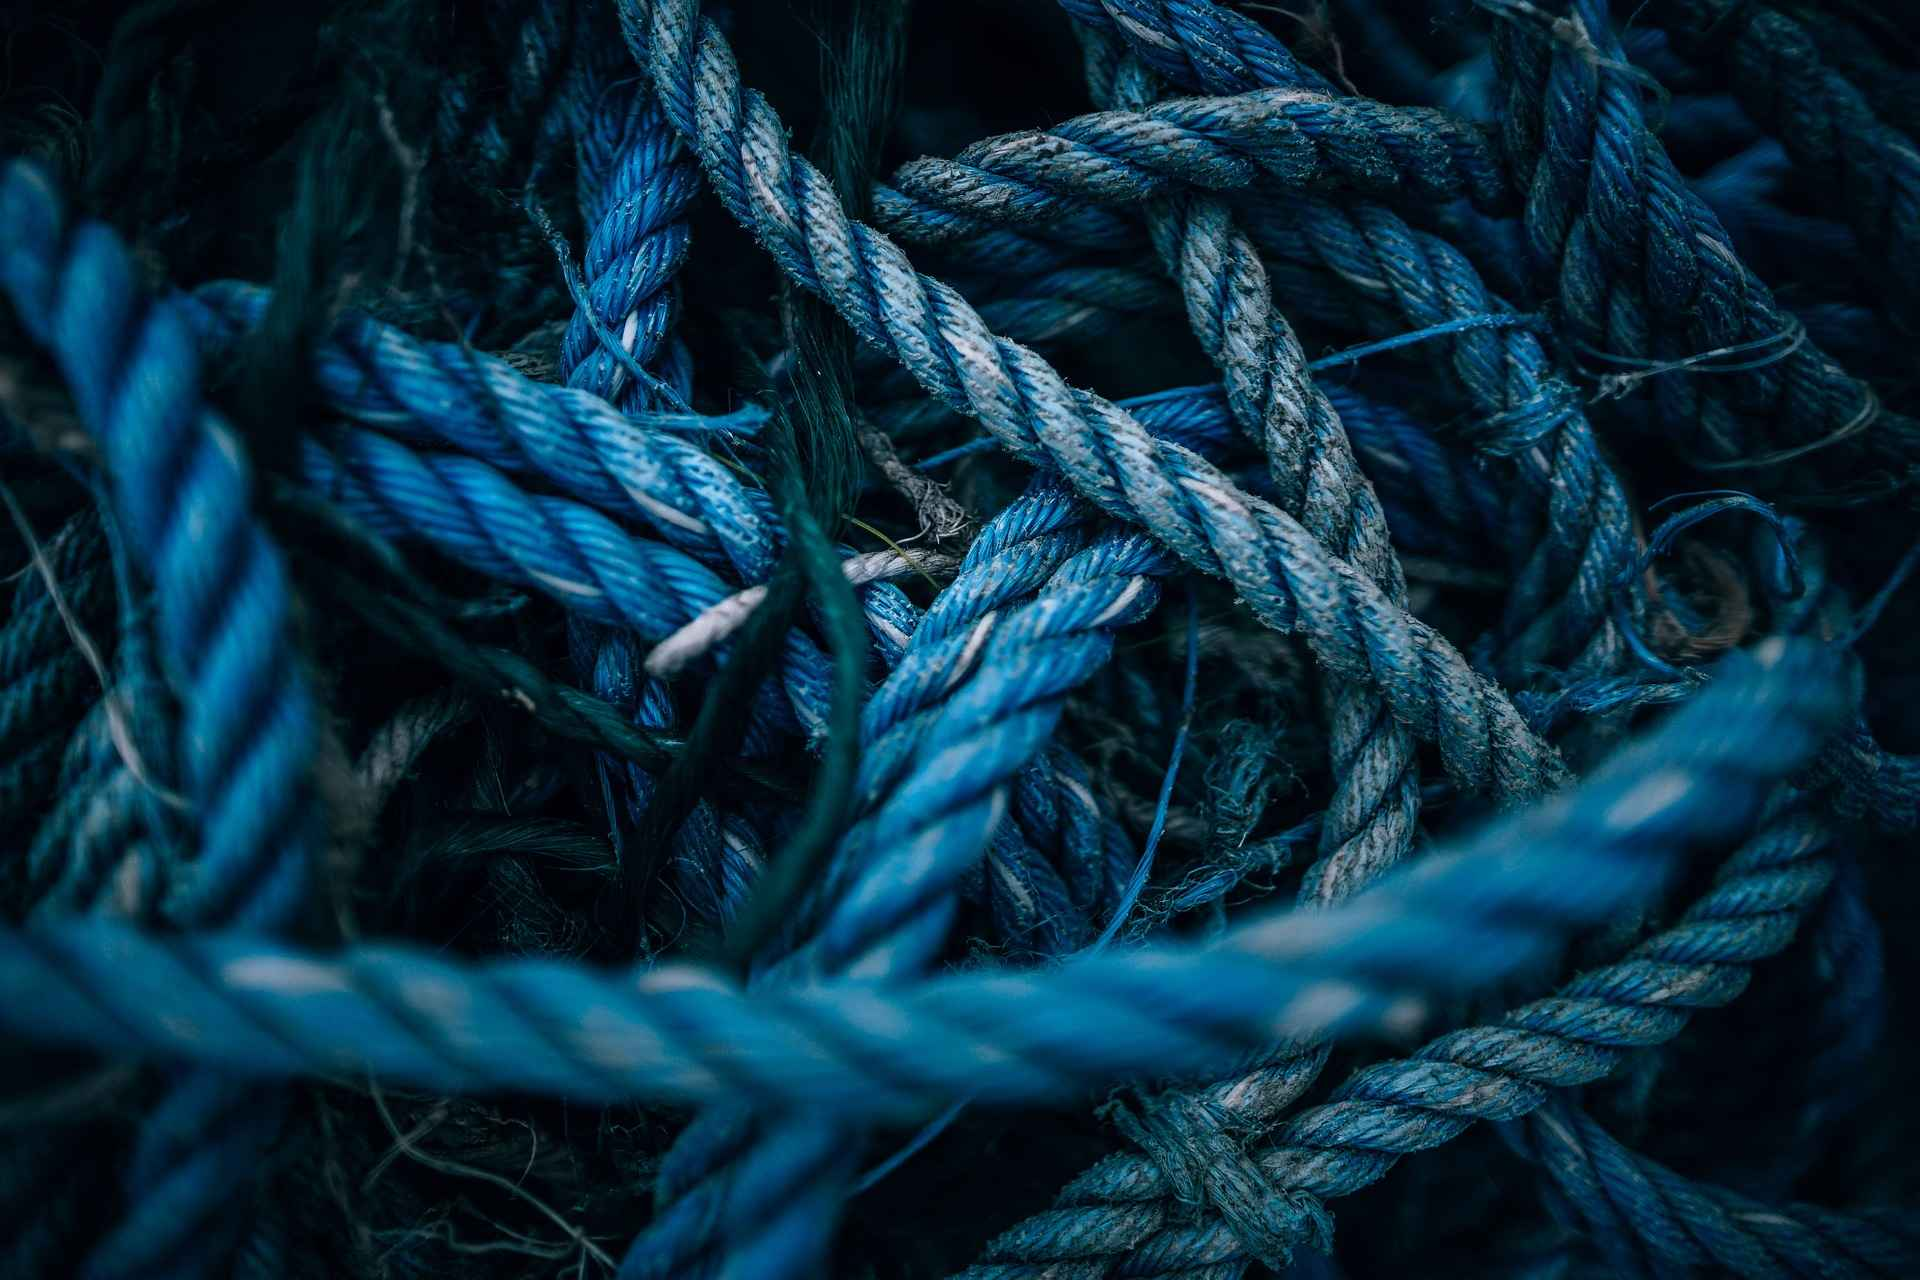 teal-knot-twisted-rope